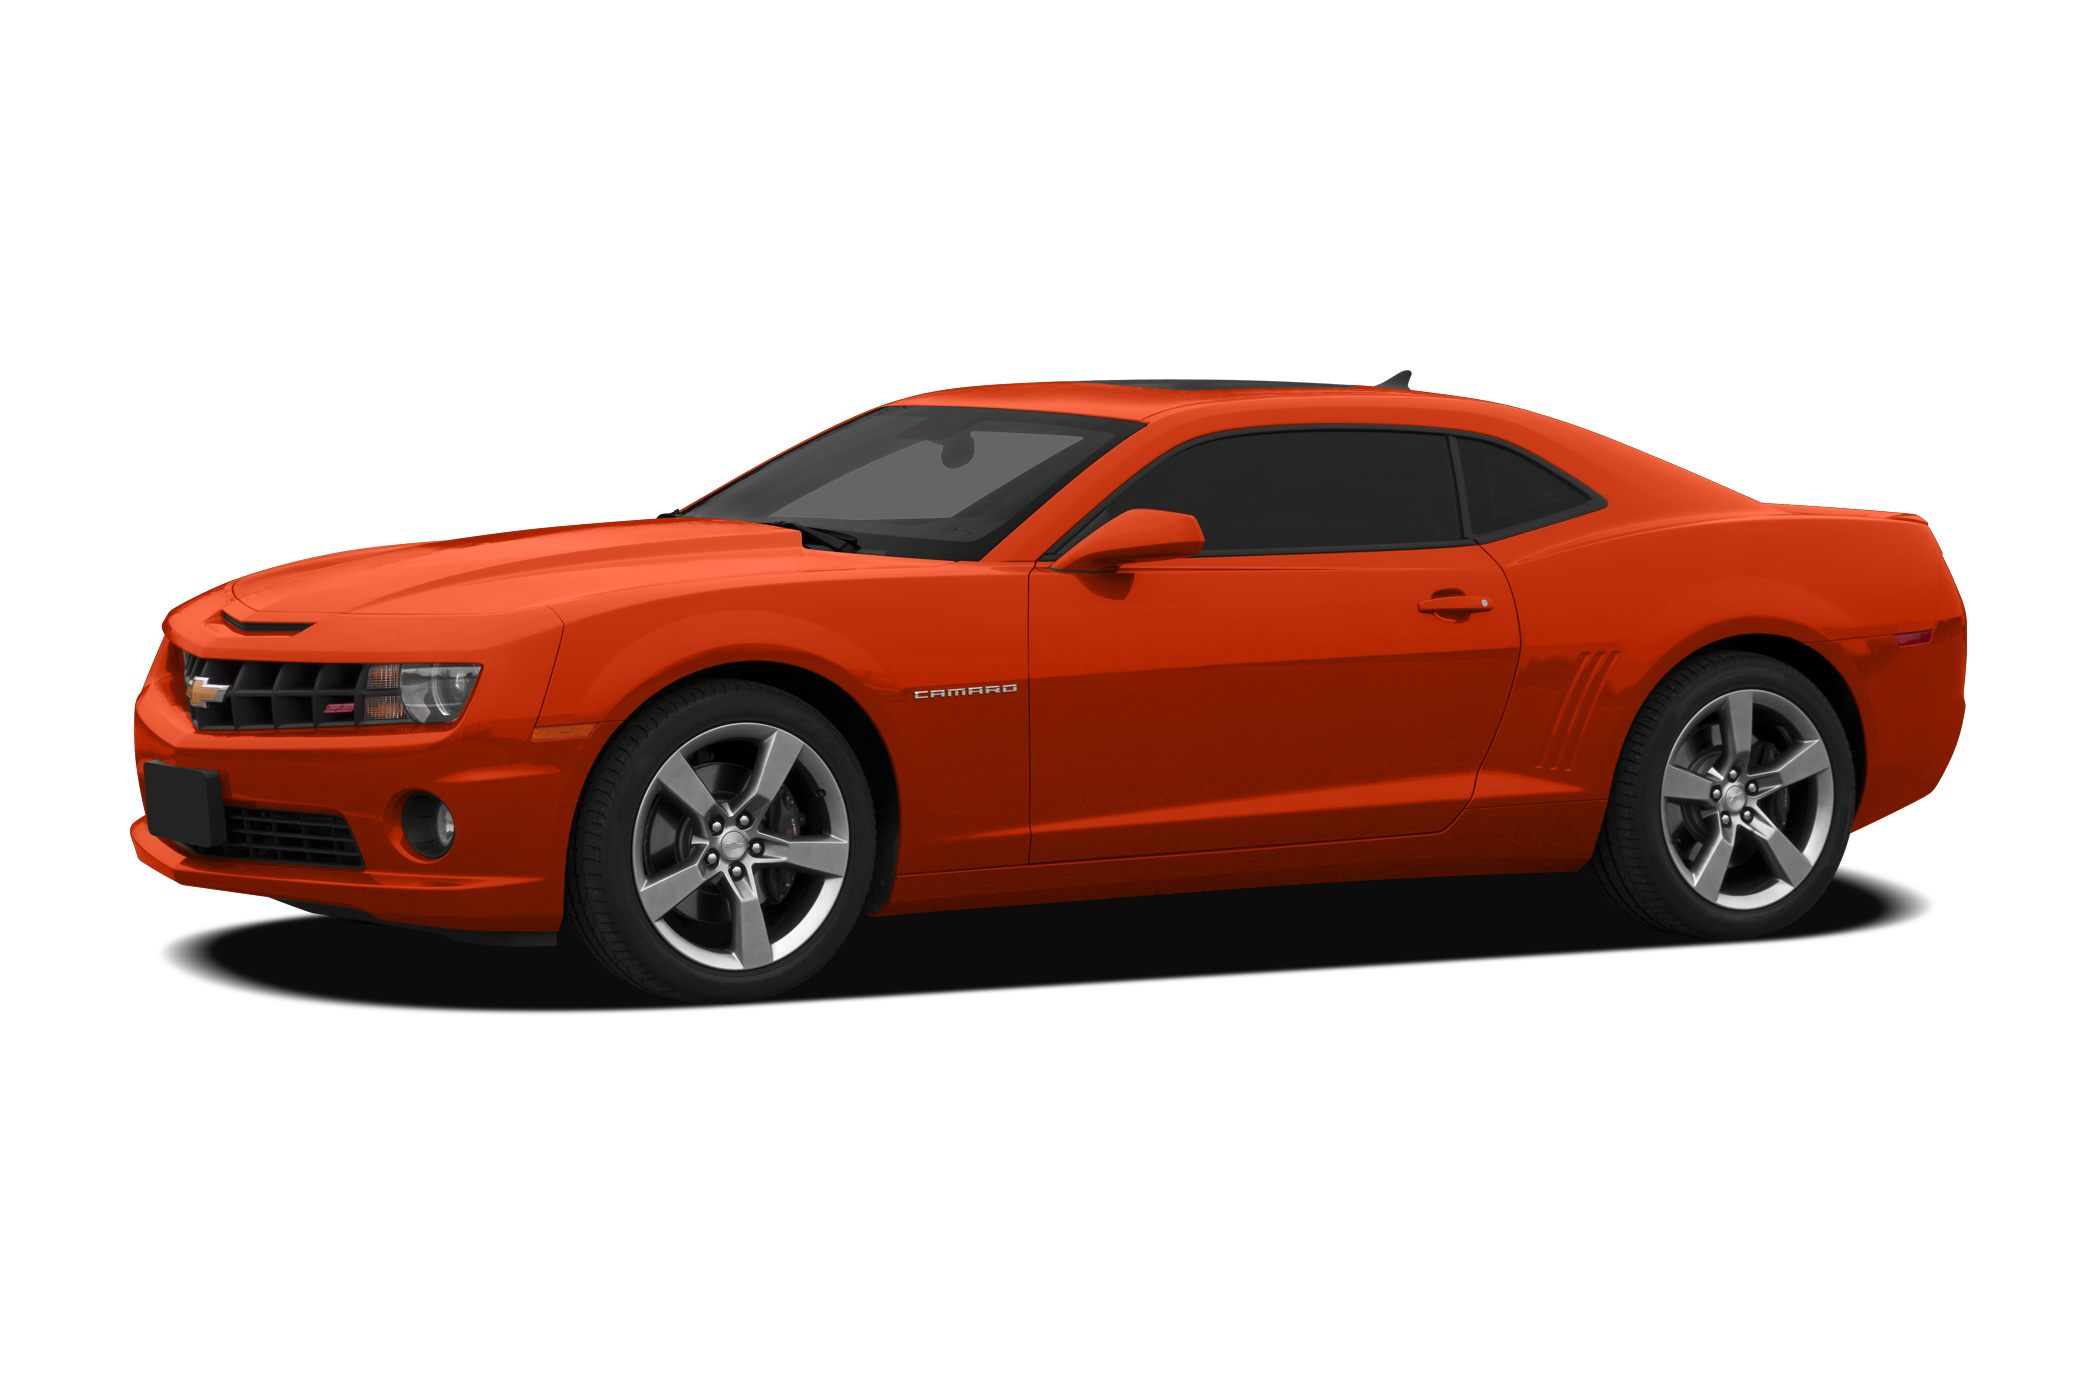 2012 Chevrolet Camaro 2SS Convertible for sale in Charlotte for $25,995 with 20,980 miles.